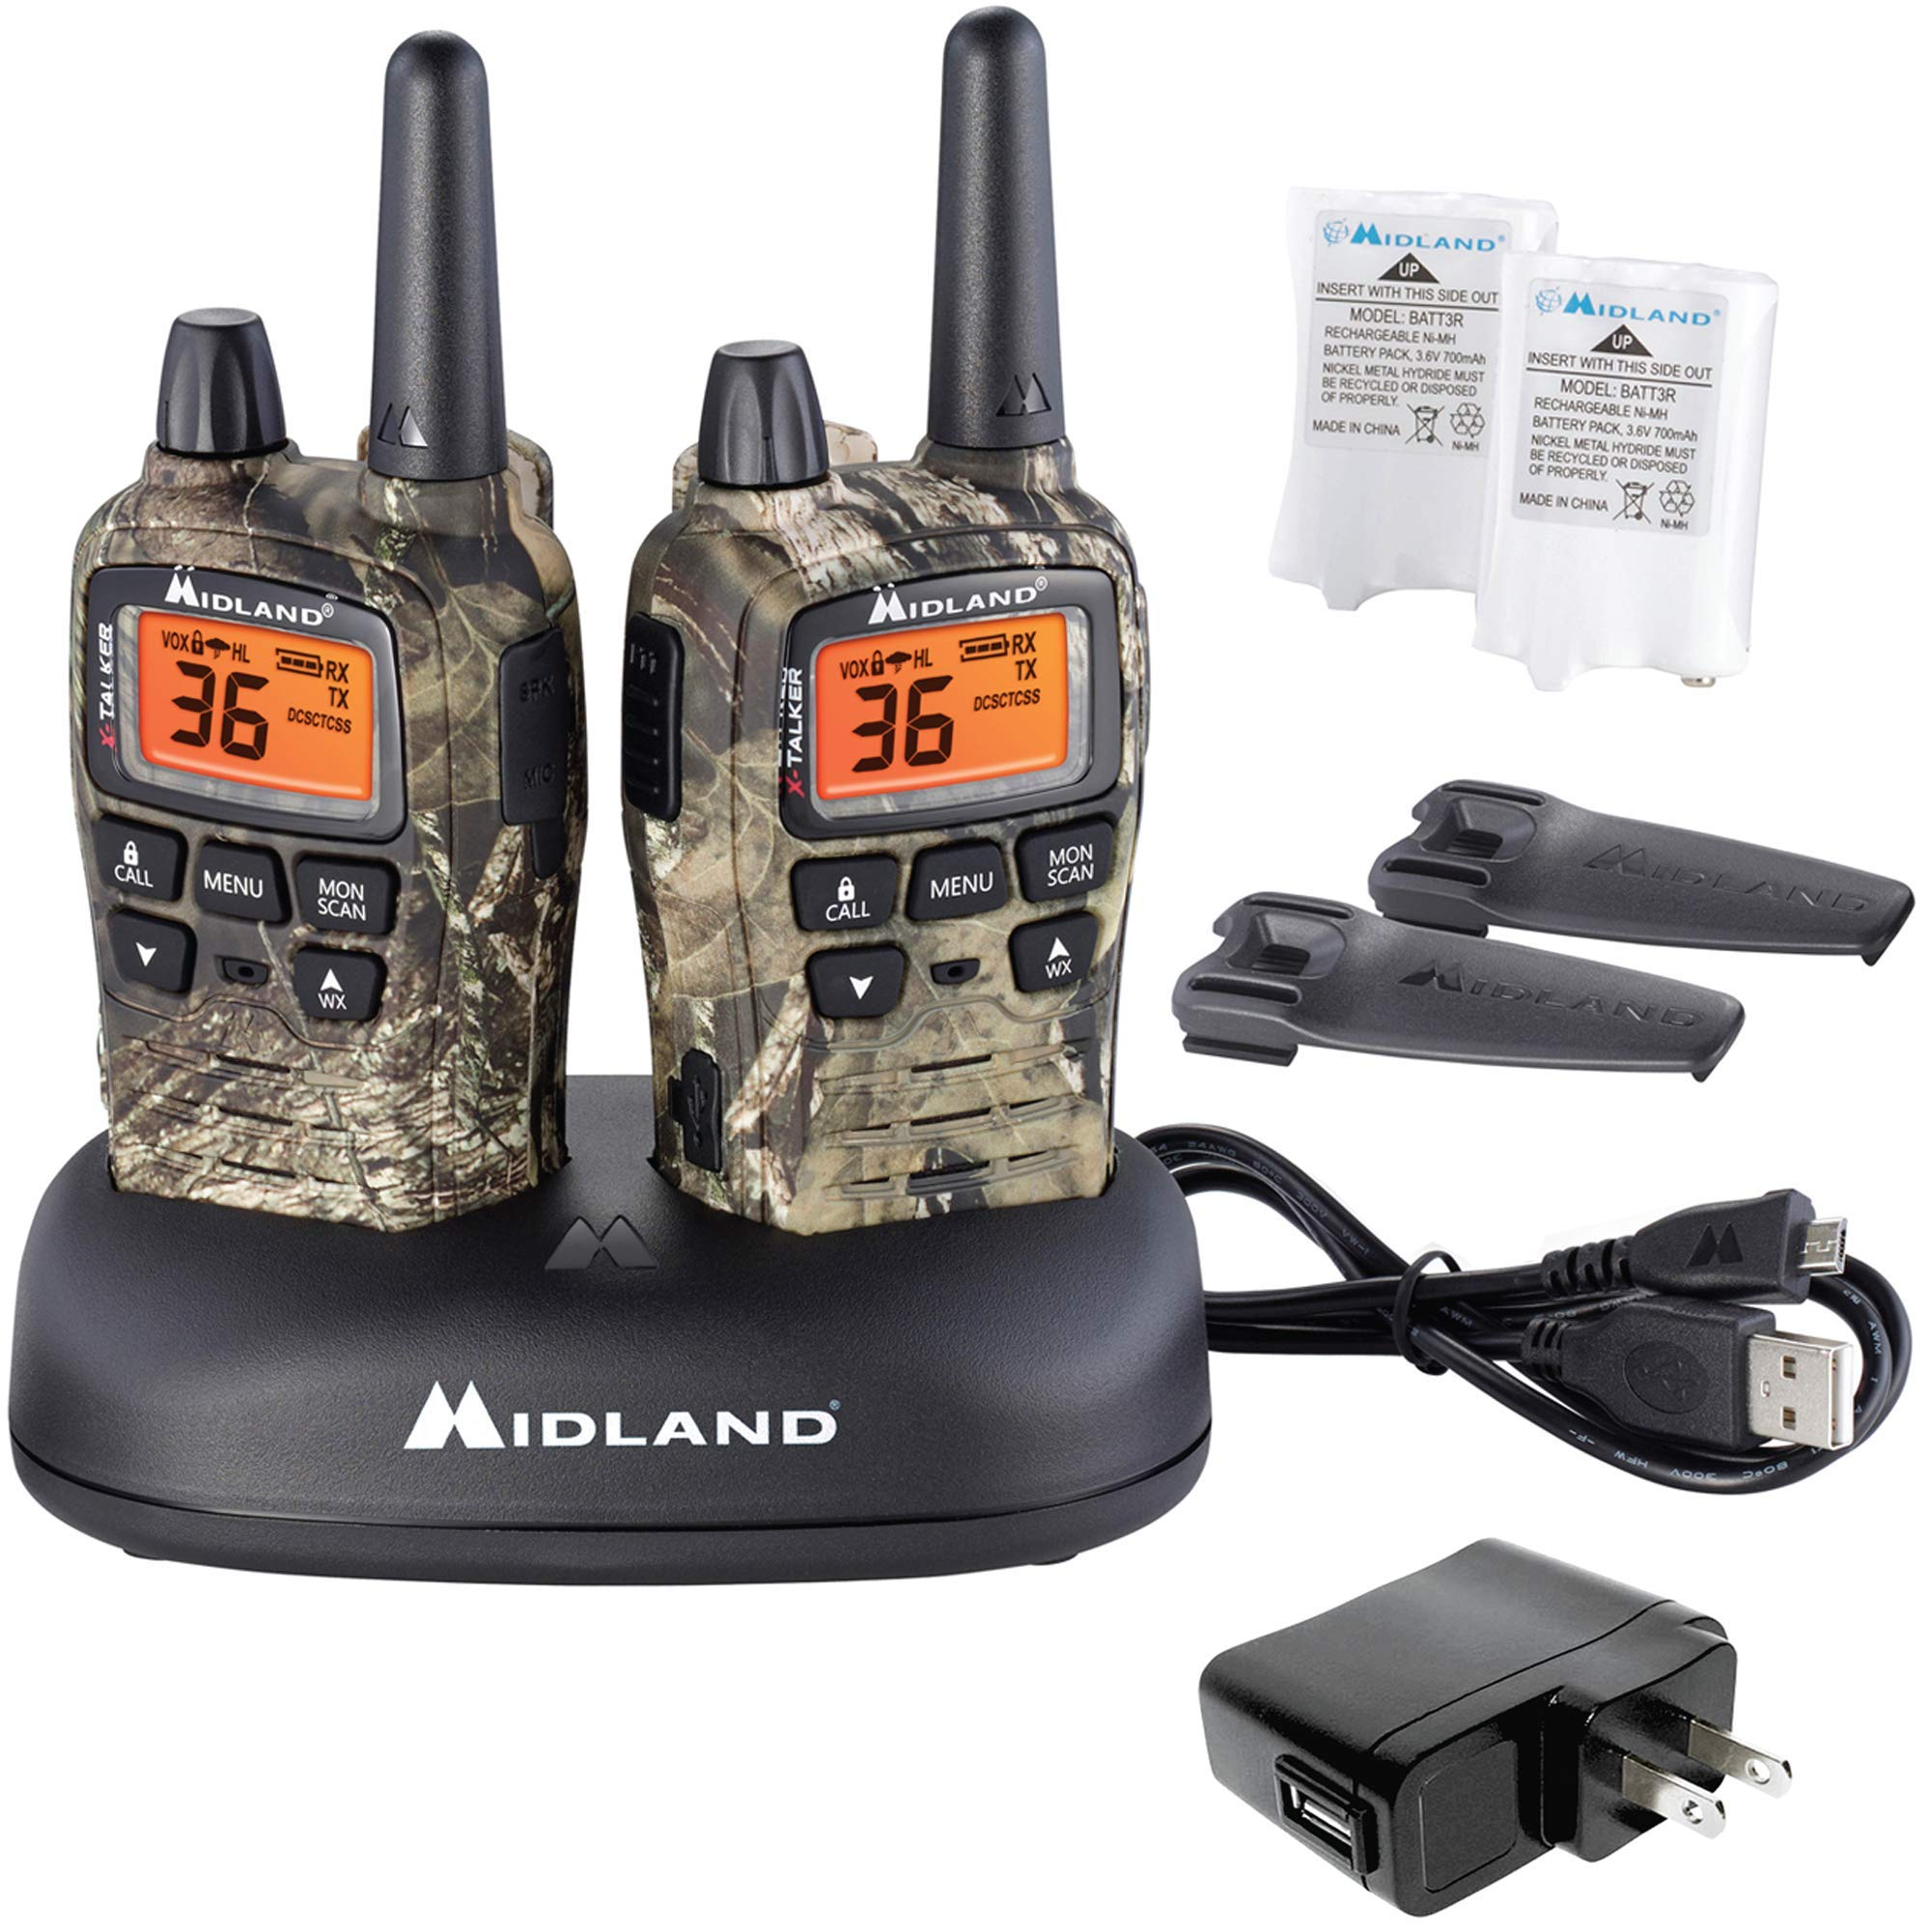 Midland - X-TALKER T75VP3, 36 Channel FRS Two-Way Radio - Up to 38 Mile Range Walkie Talkie, 121 Privacy Codes, & NOAA Weather Scan + Alert (Pair Pack) (Mossy Oak Camo) by Midland